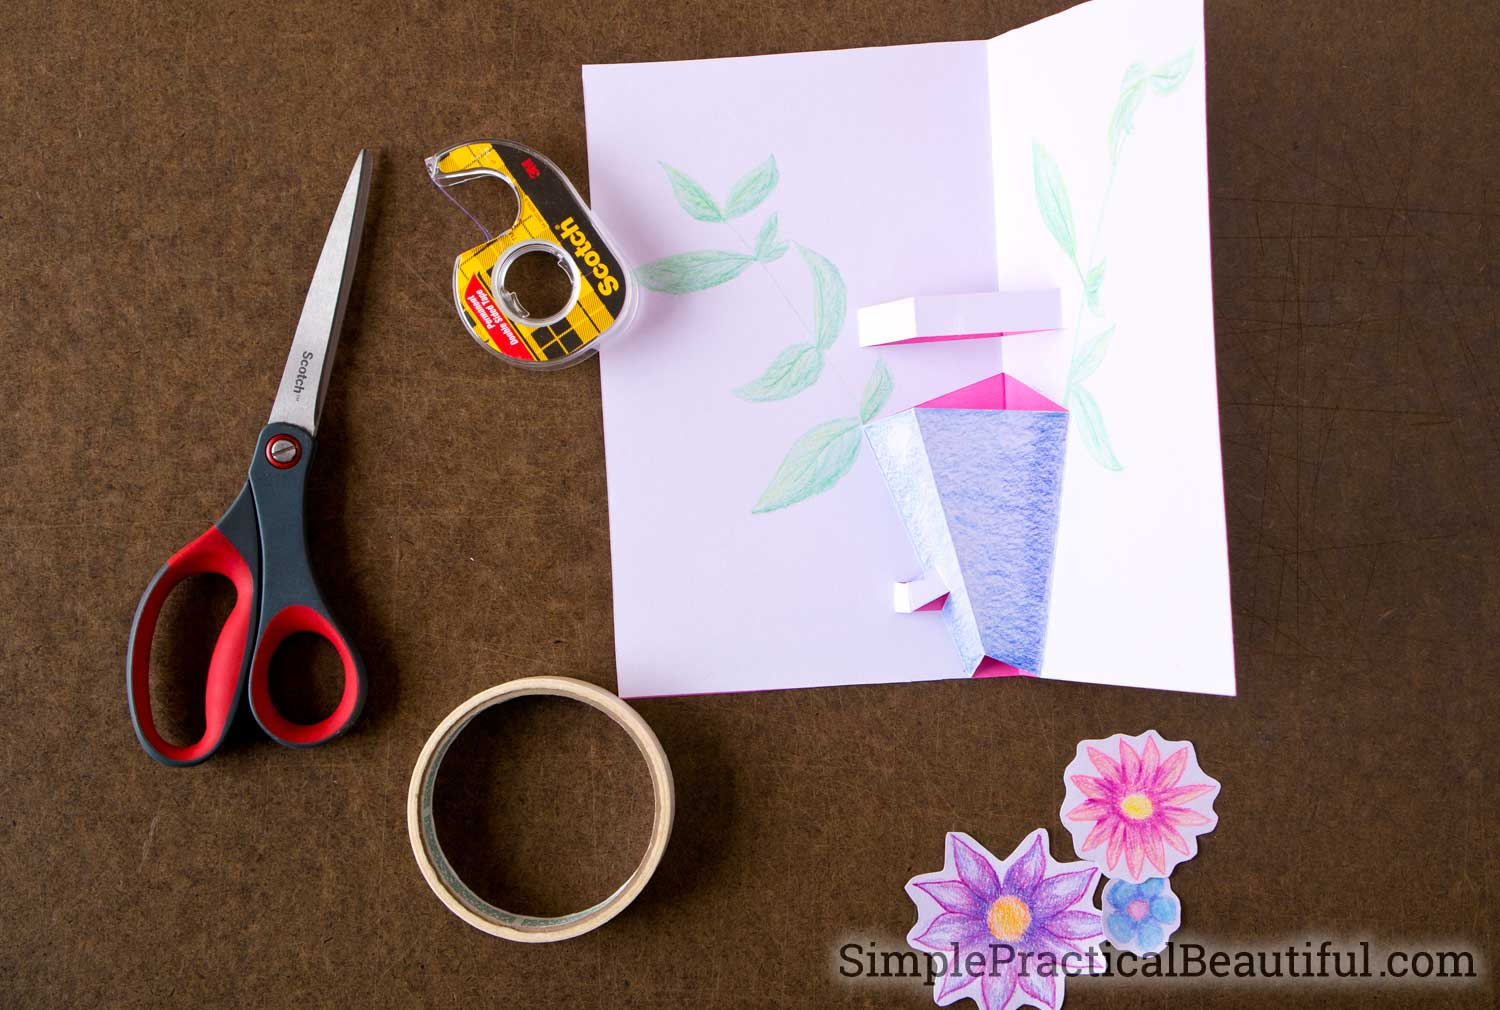 How to make a pop-up card with paper, scissors, tape, and a little creativity